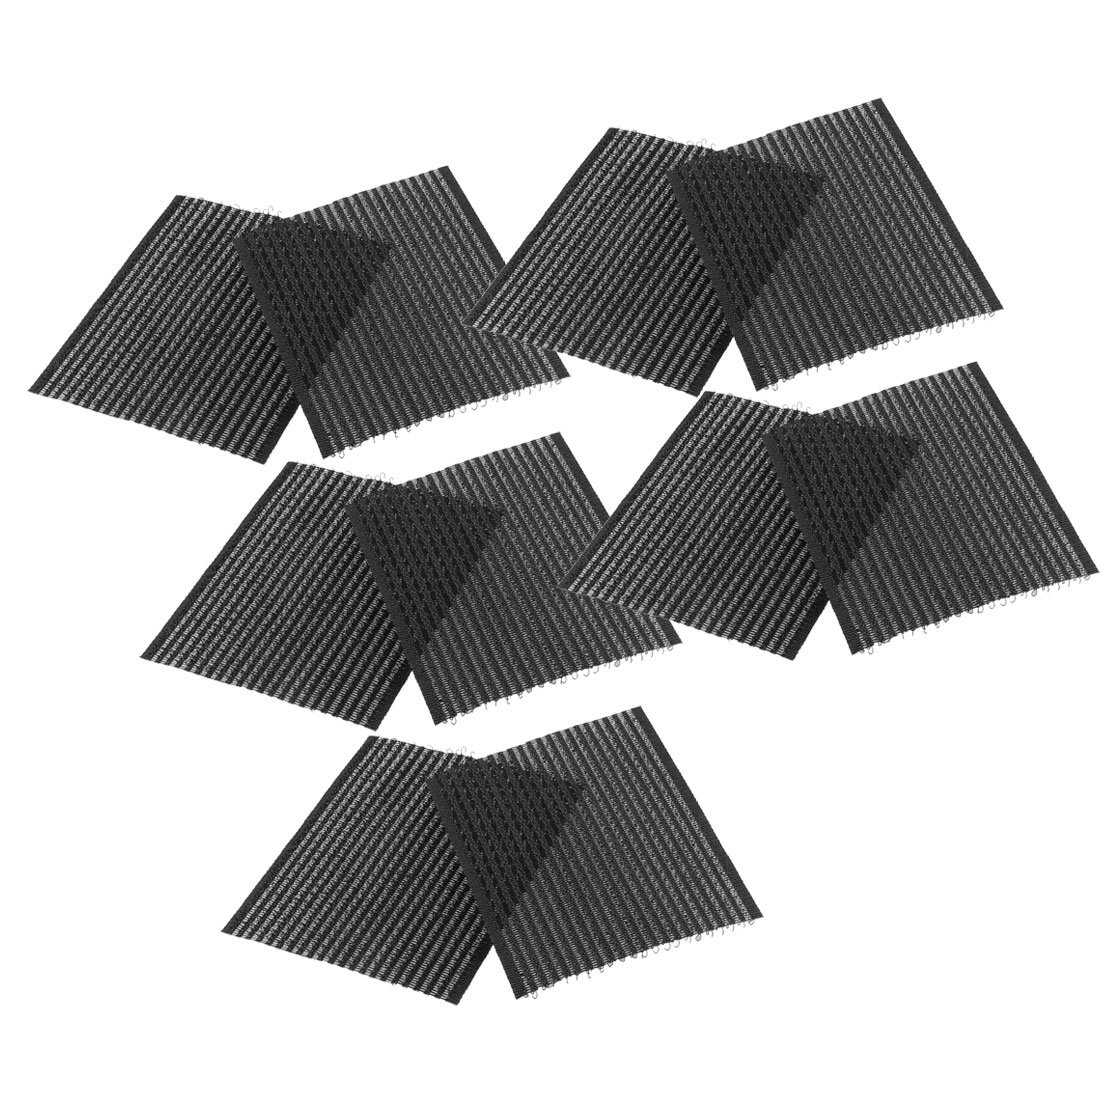 uxcell Bangs Clip Magic Paste Posts Fringe Hair Stickers 5 Bags 10 Pcs Black a13012400ux0021